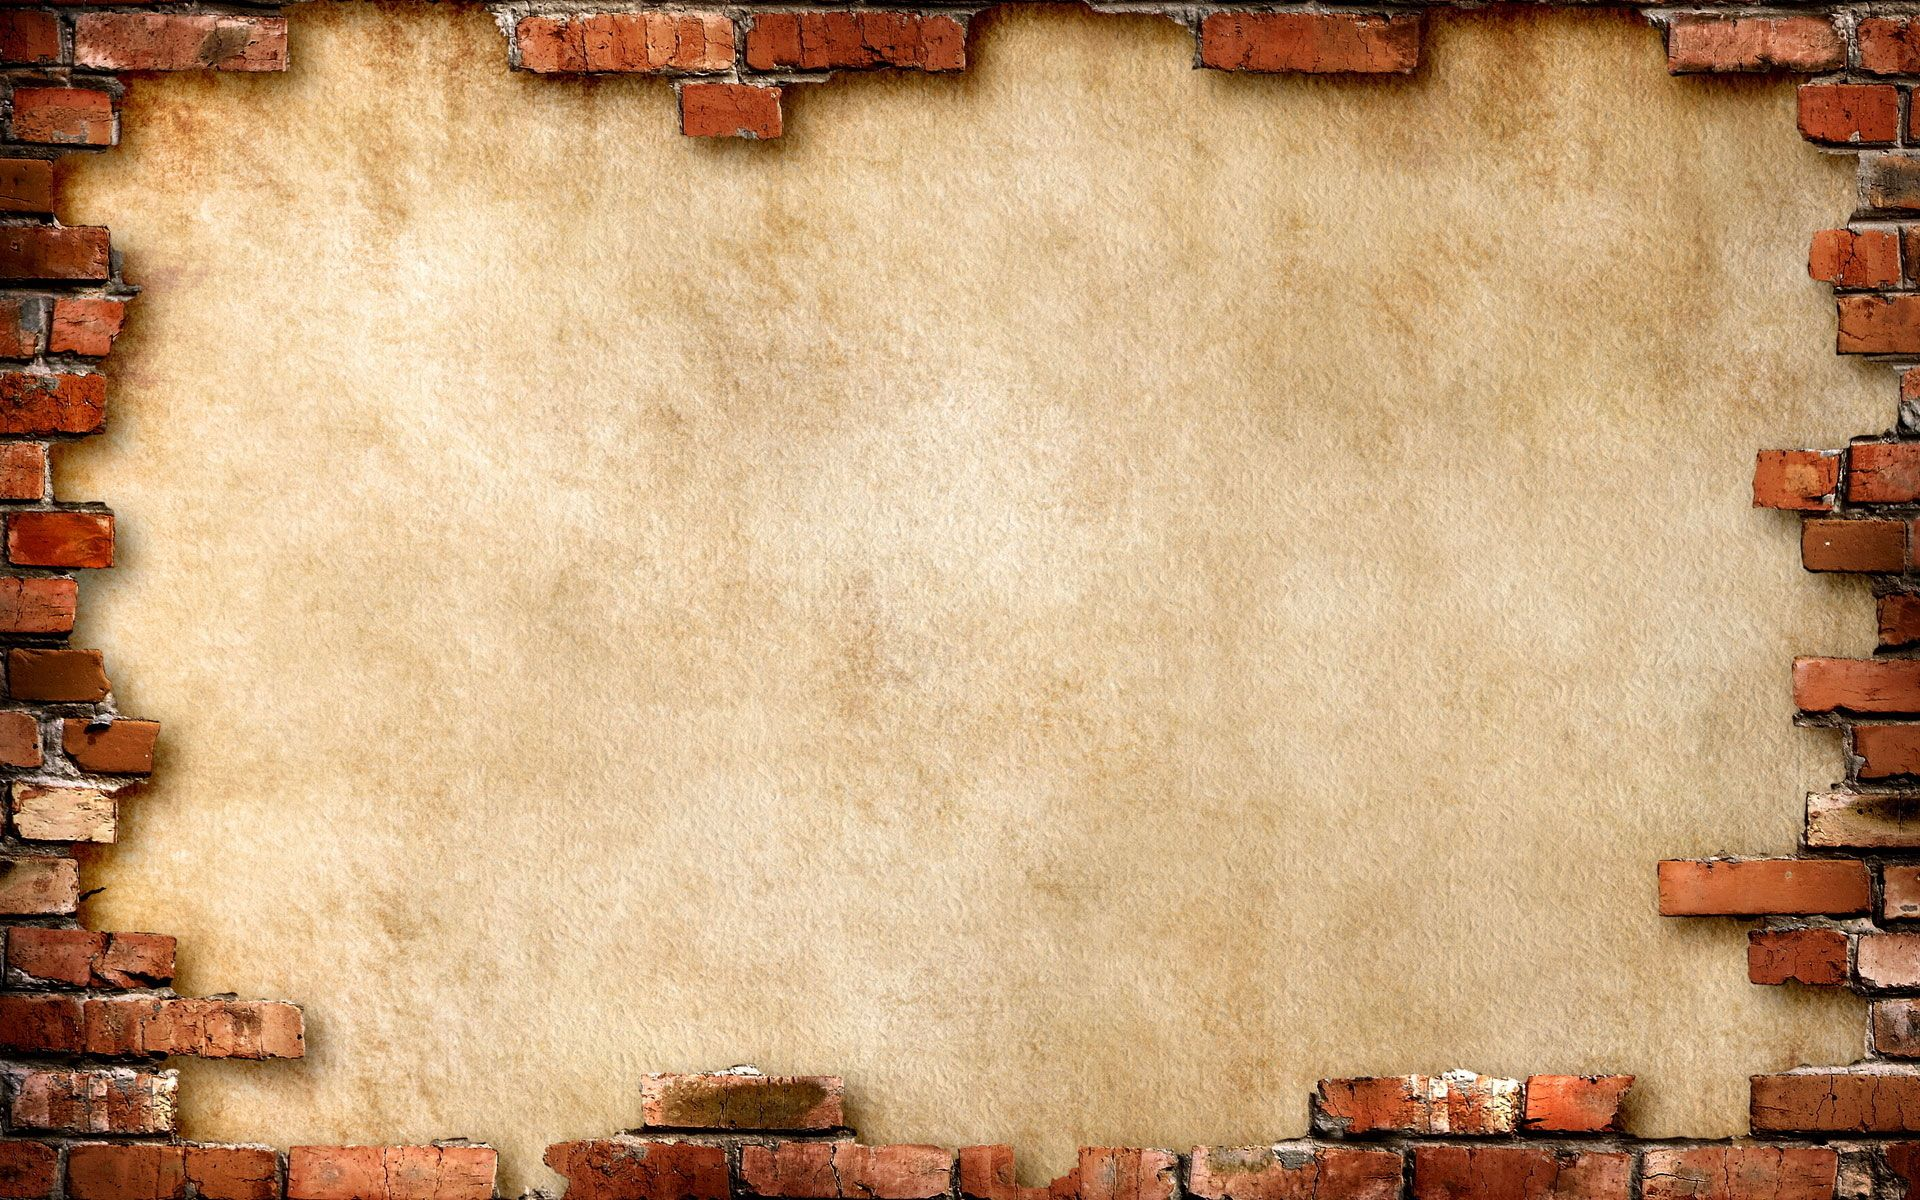 Backgrounds Photoshop Editing High Resolution Images 23923wall